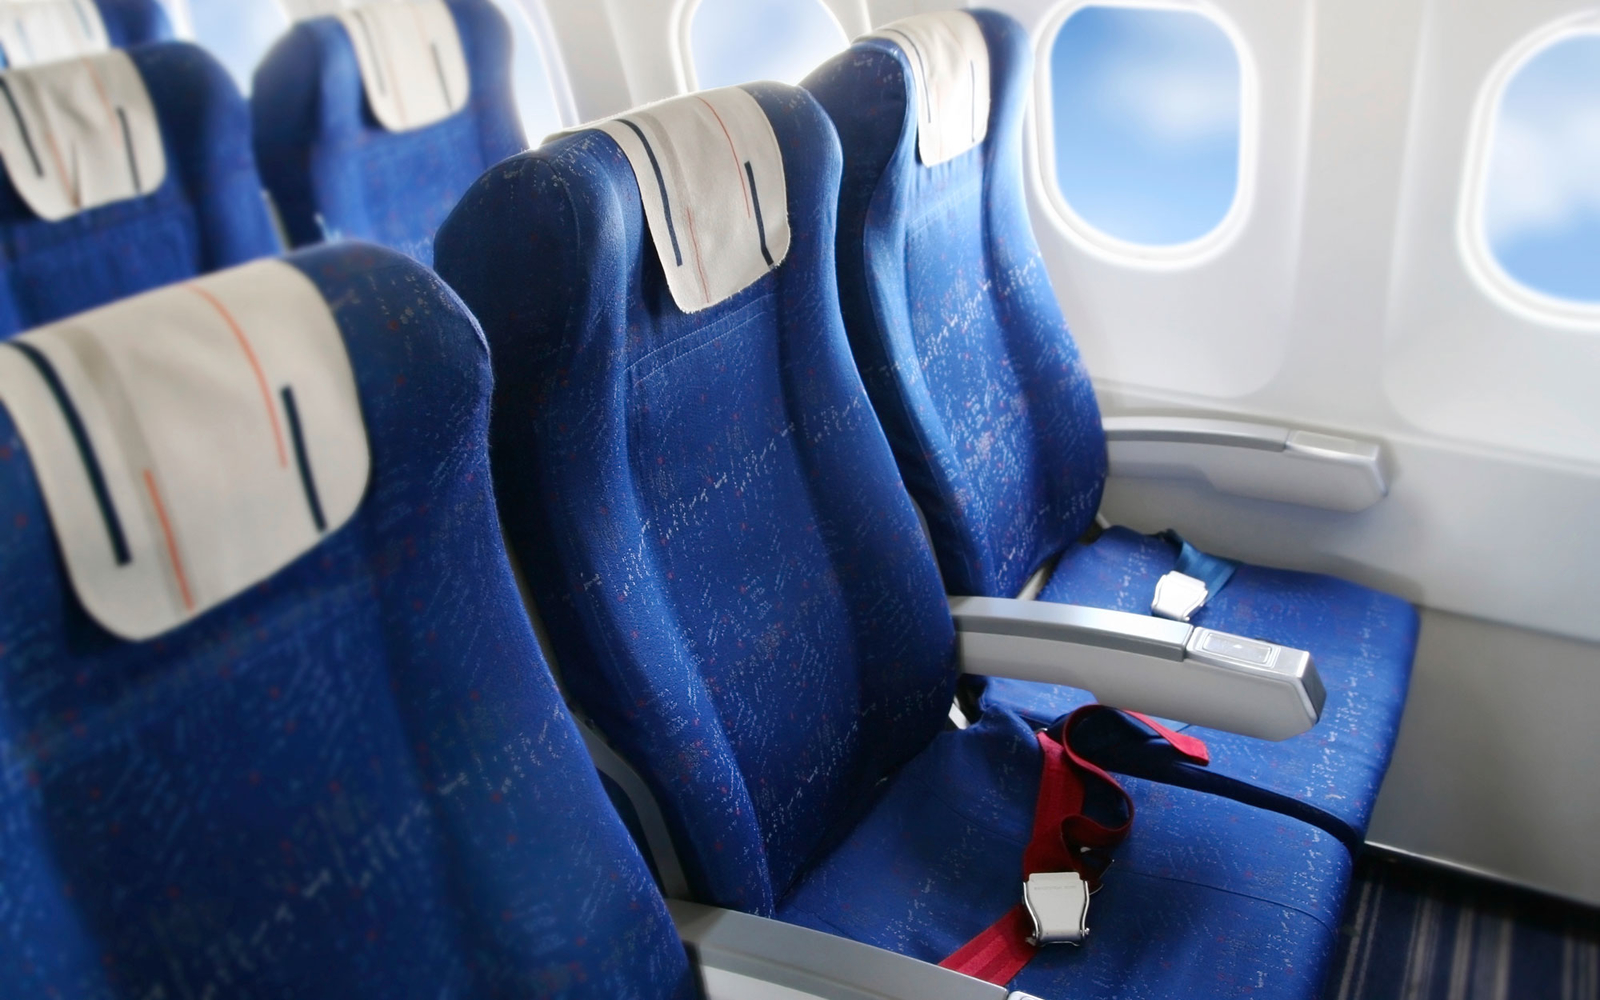 things that make the middle seat an actual perk travel leisure how to make the middle seat feel exclusive according to one design firm